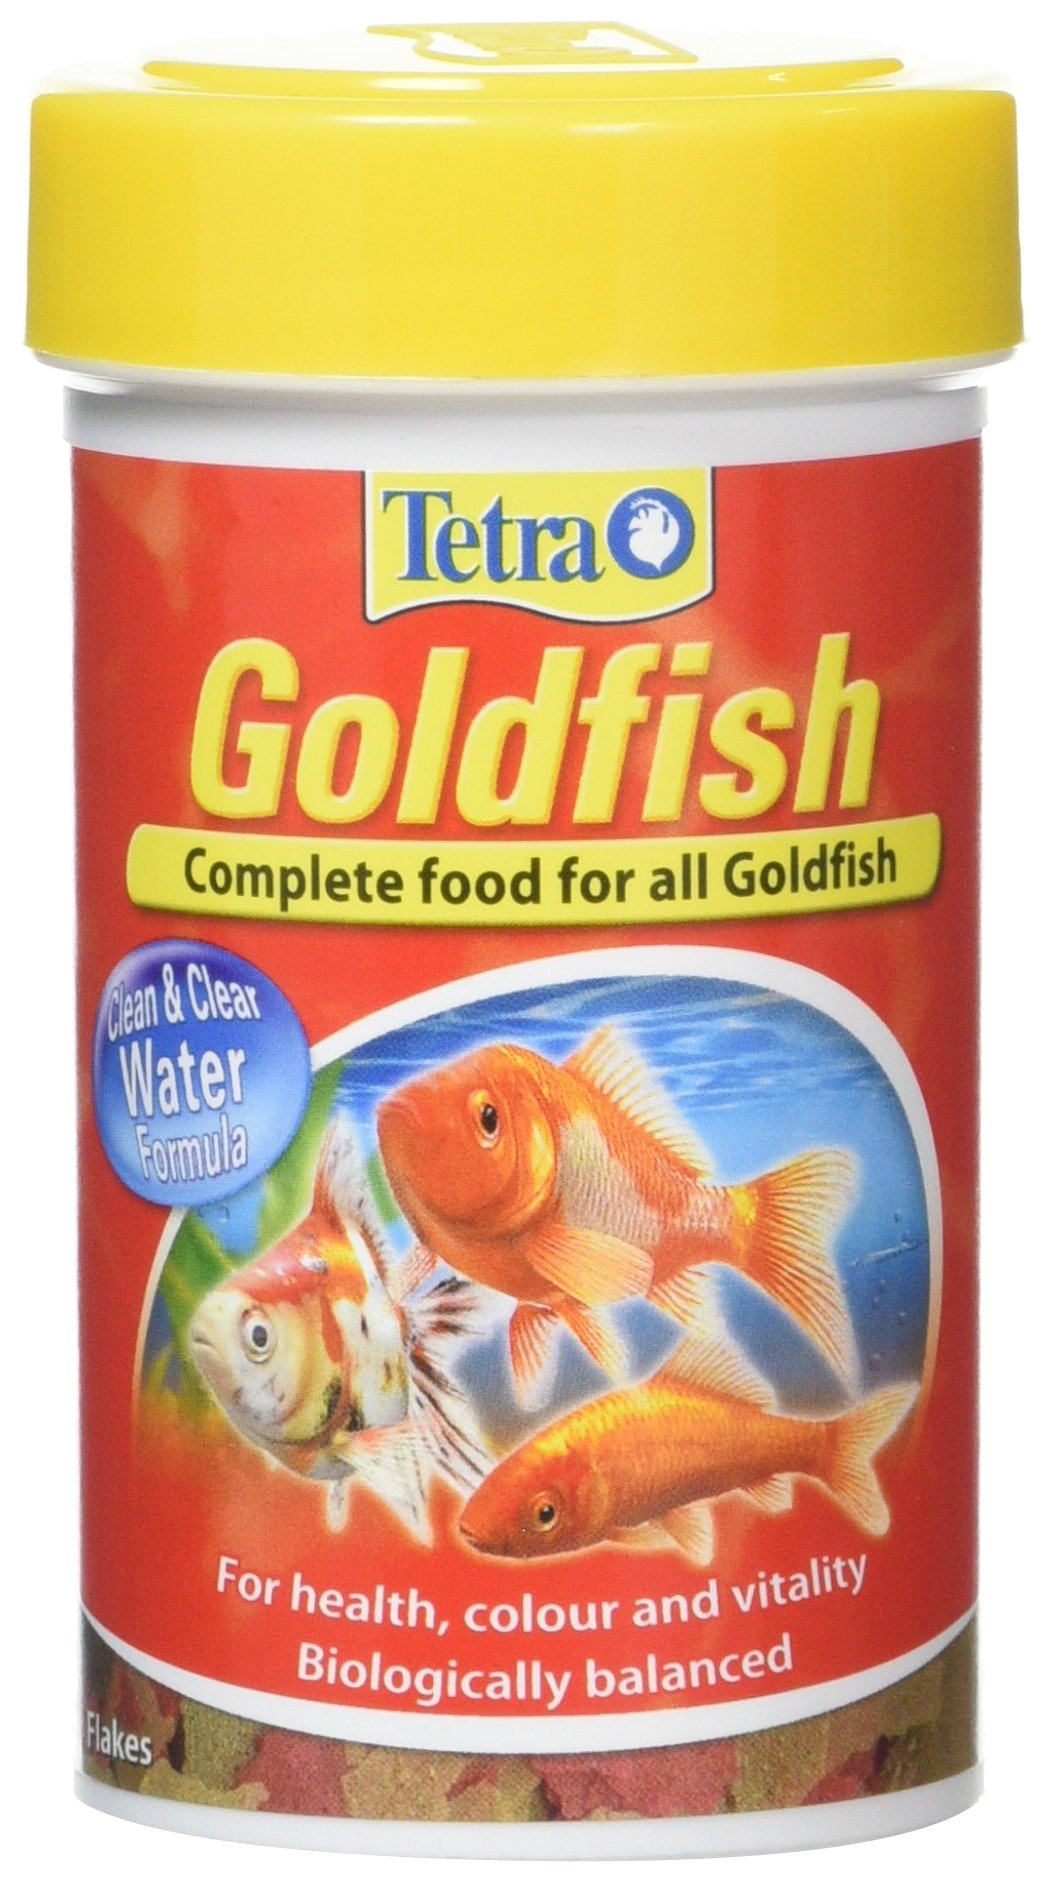 Fish & Aquariums Aquariums & Tanks Pond Mix Floating Fish Food Sticks Koi Carp Goldfish Feed 10 Kg Sack Rich And Magnificent